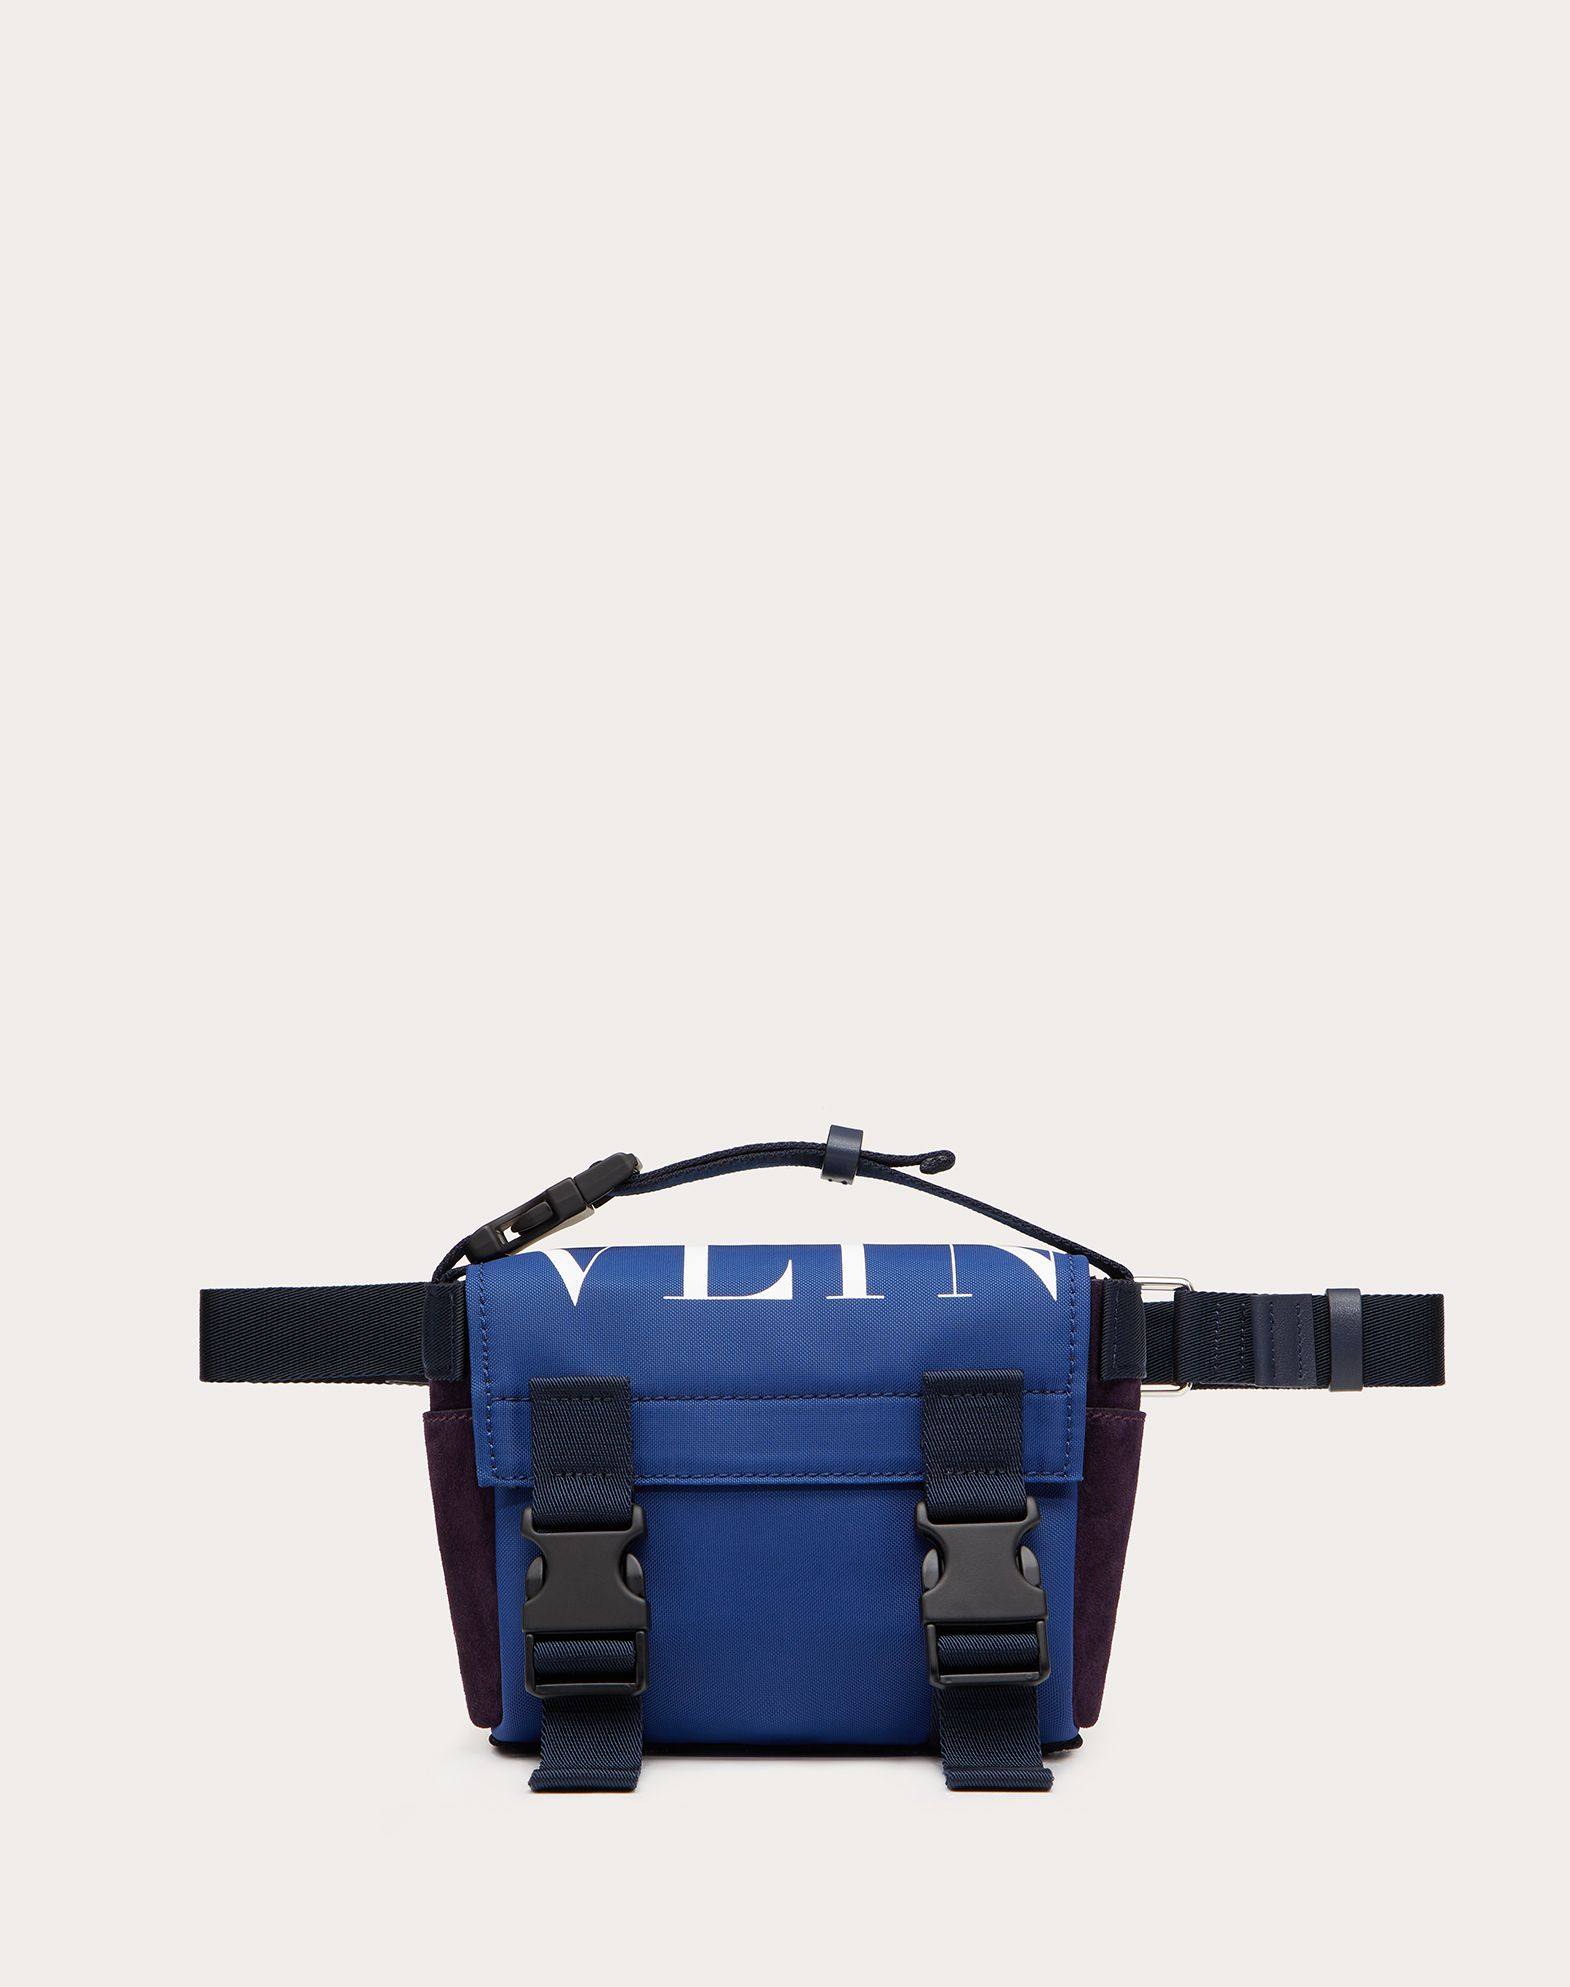 VLTN Nylon and Crust Leather Belt Bag